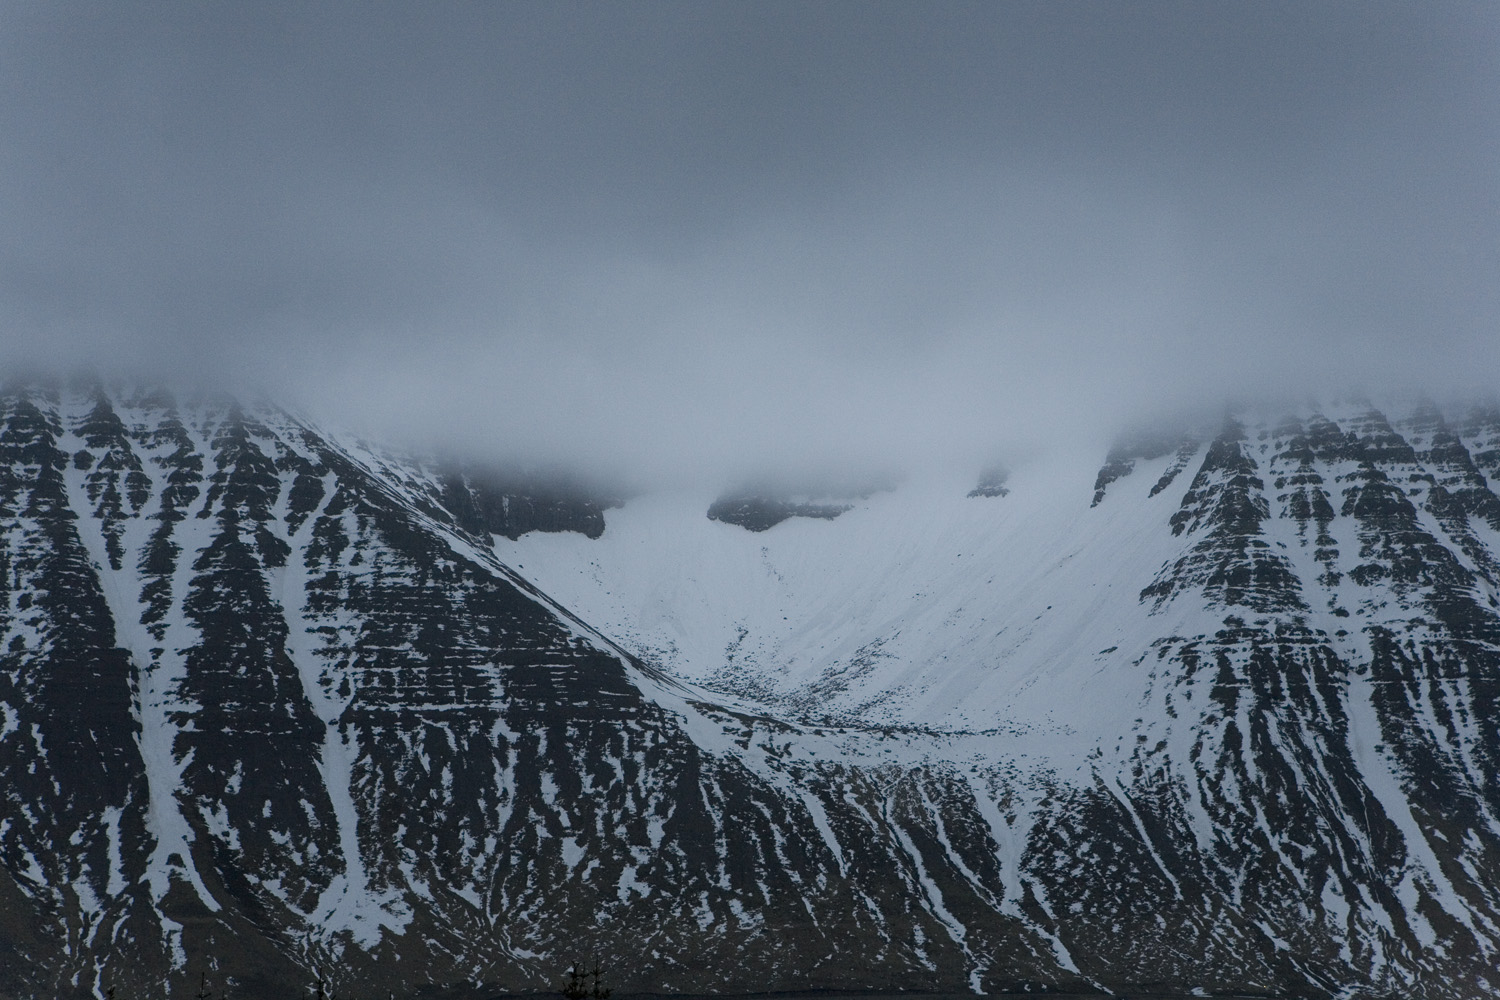 Mountains in the West Fjords, a spot with a formation known as the elf's seat. Iceland, 2011.